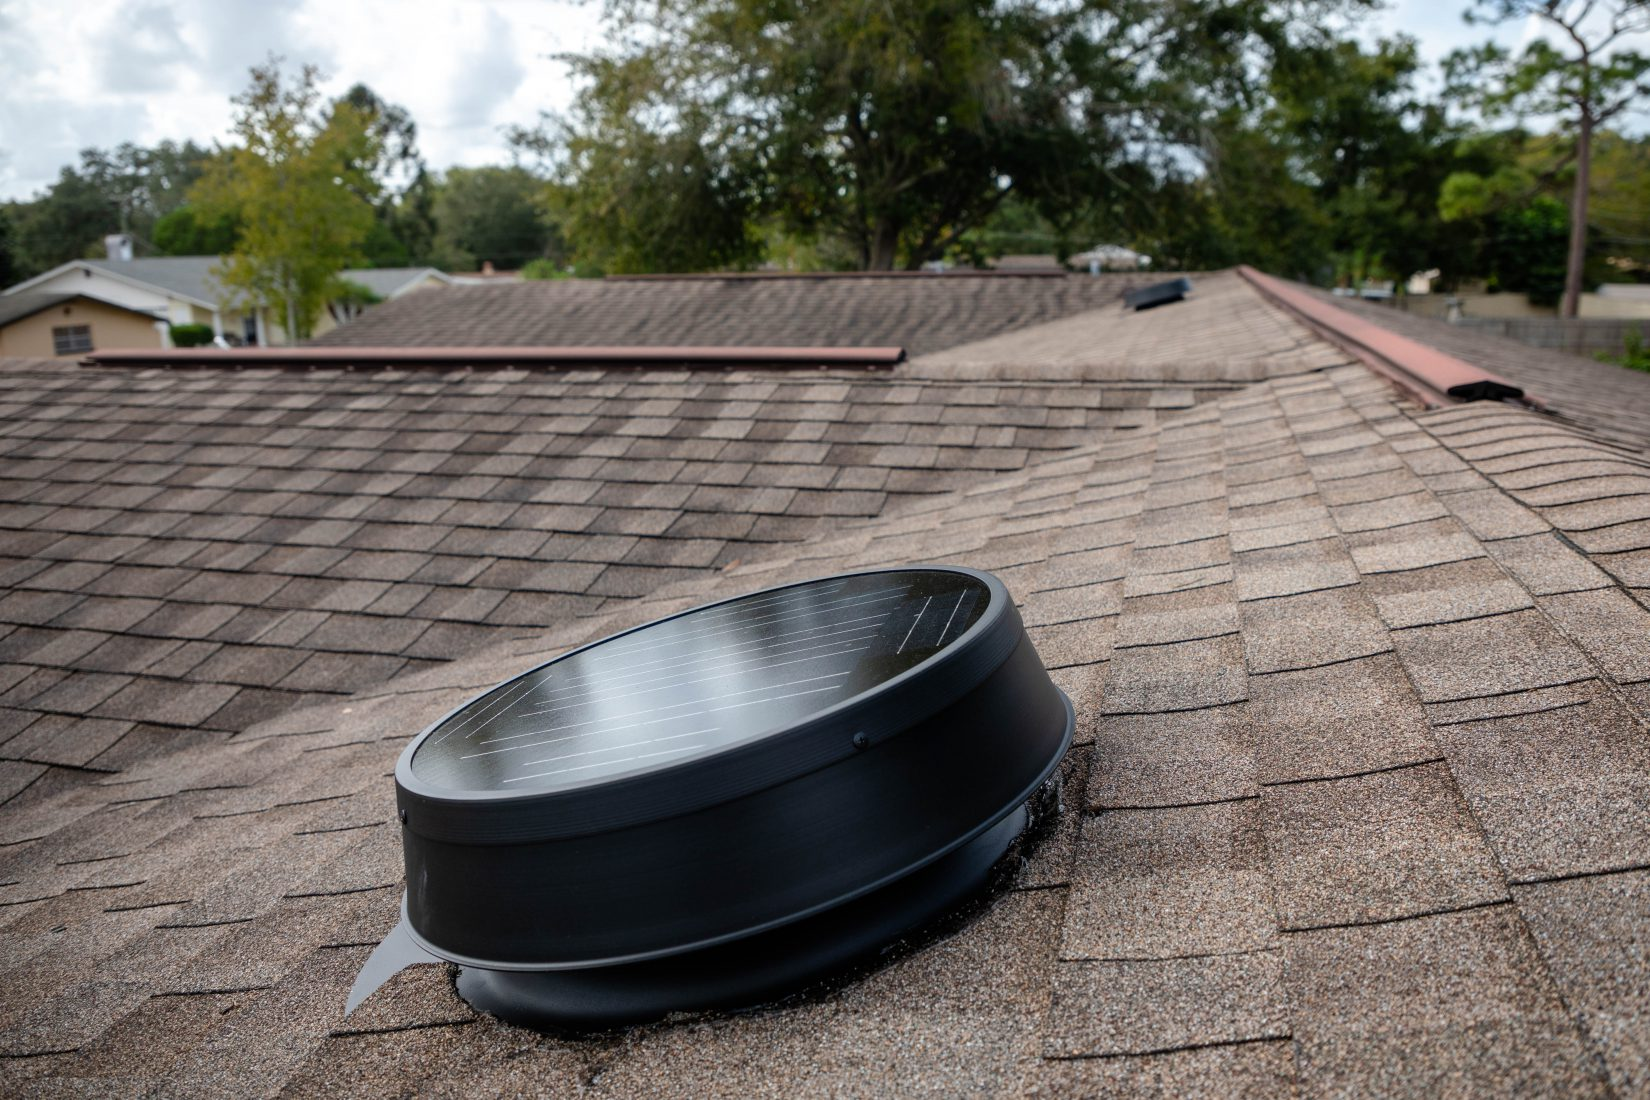 Side view of a solar attic fan unit on roof